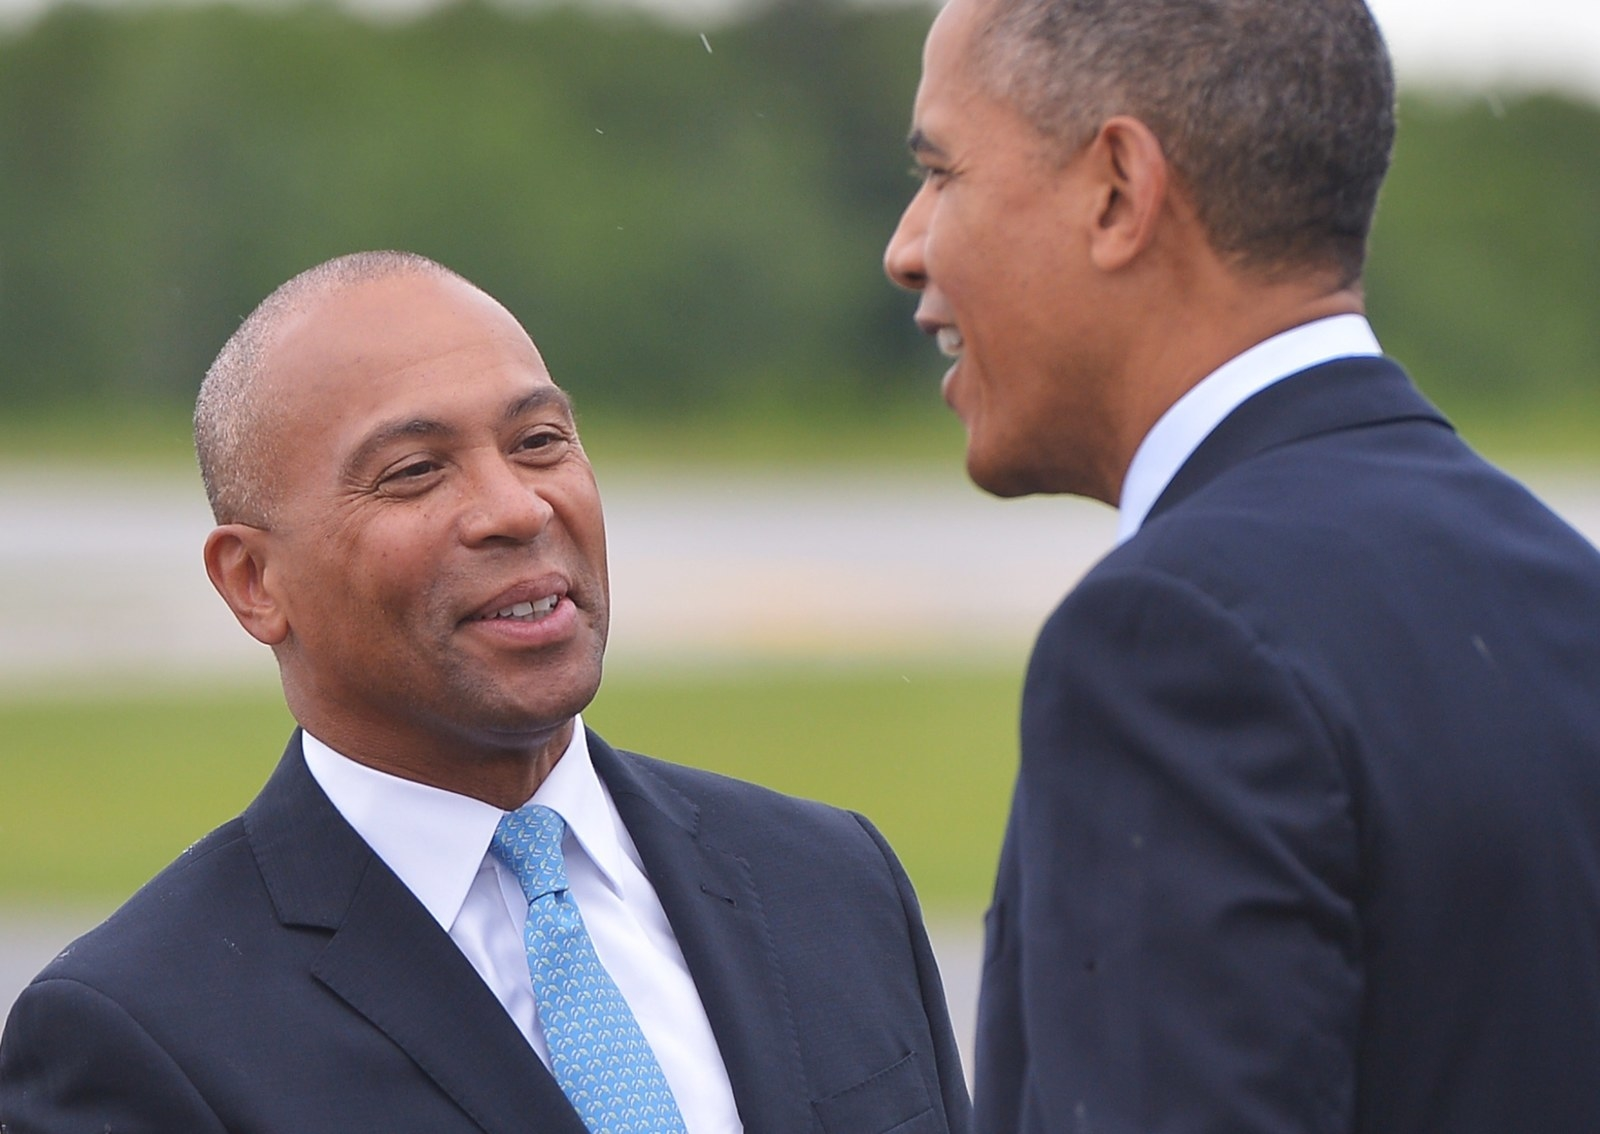 Patrick greets Obama, on a visit to Massachusetts visit in 2014.